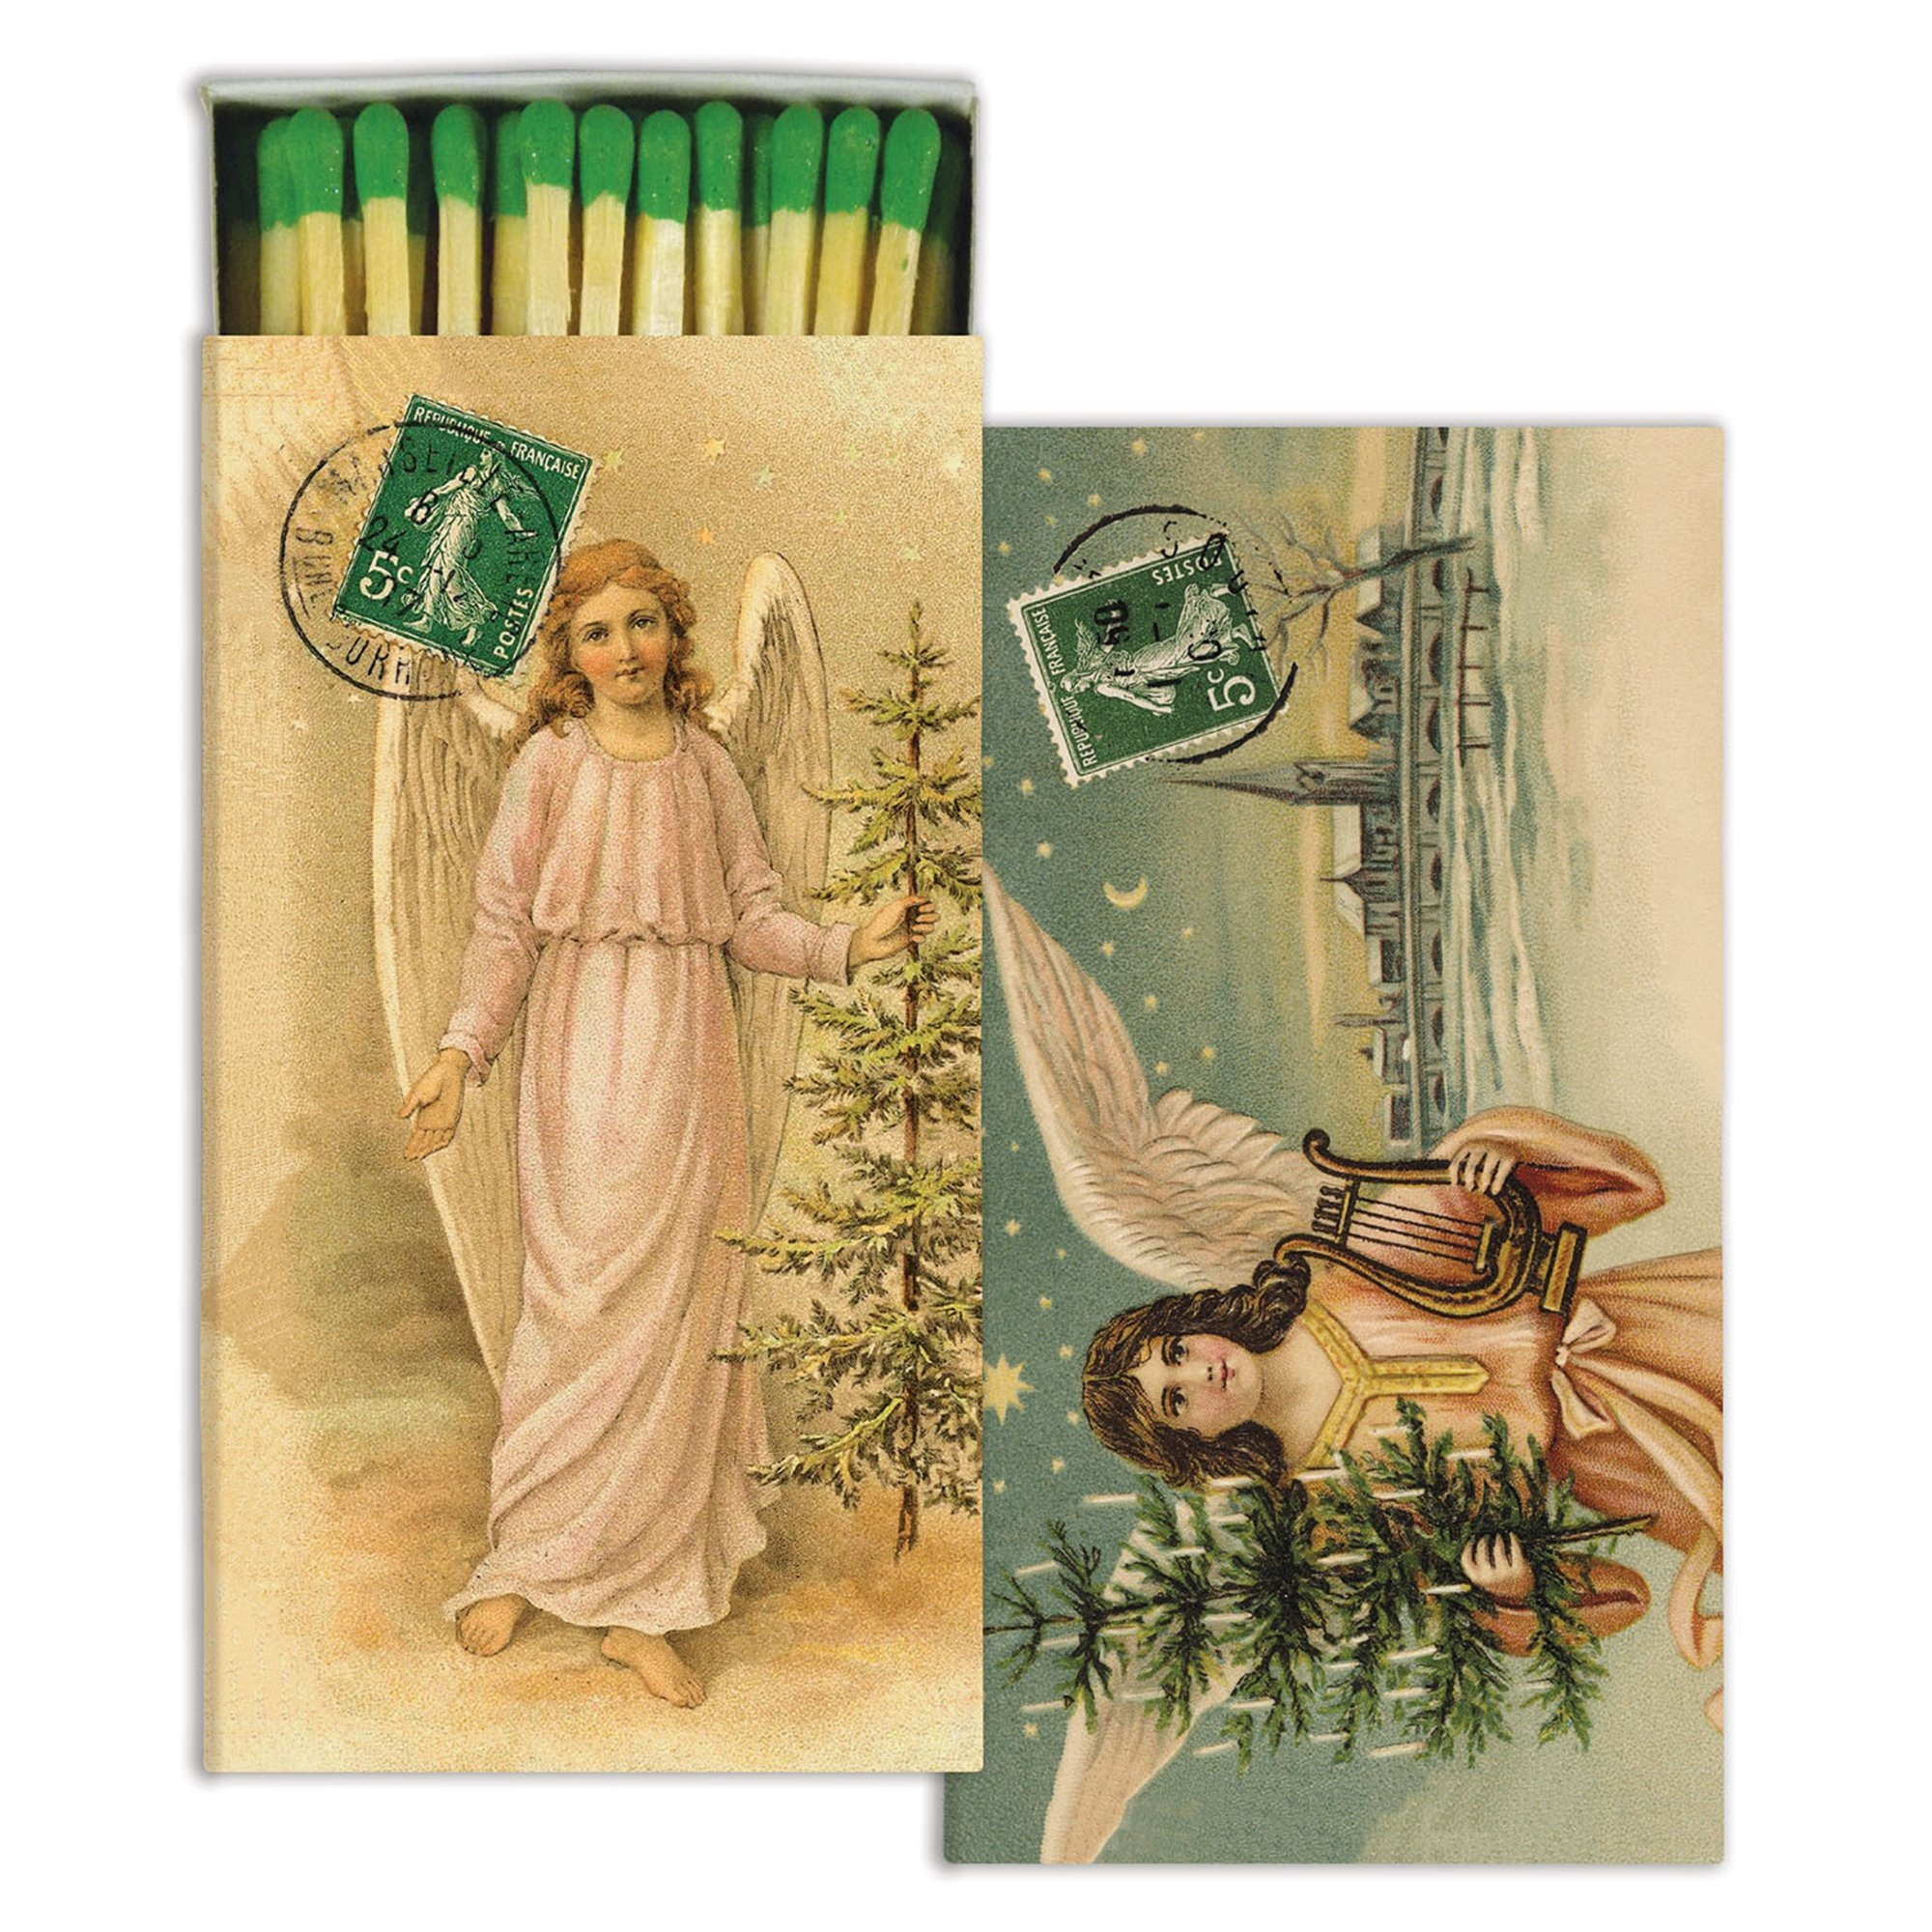 HomArt Decorative Christmas Angels Match Boxes with Long Matches Great for Lighting Candles, Grills, Fireplaces and More | Set of 10 Match Boxes